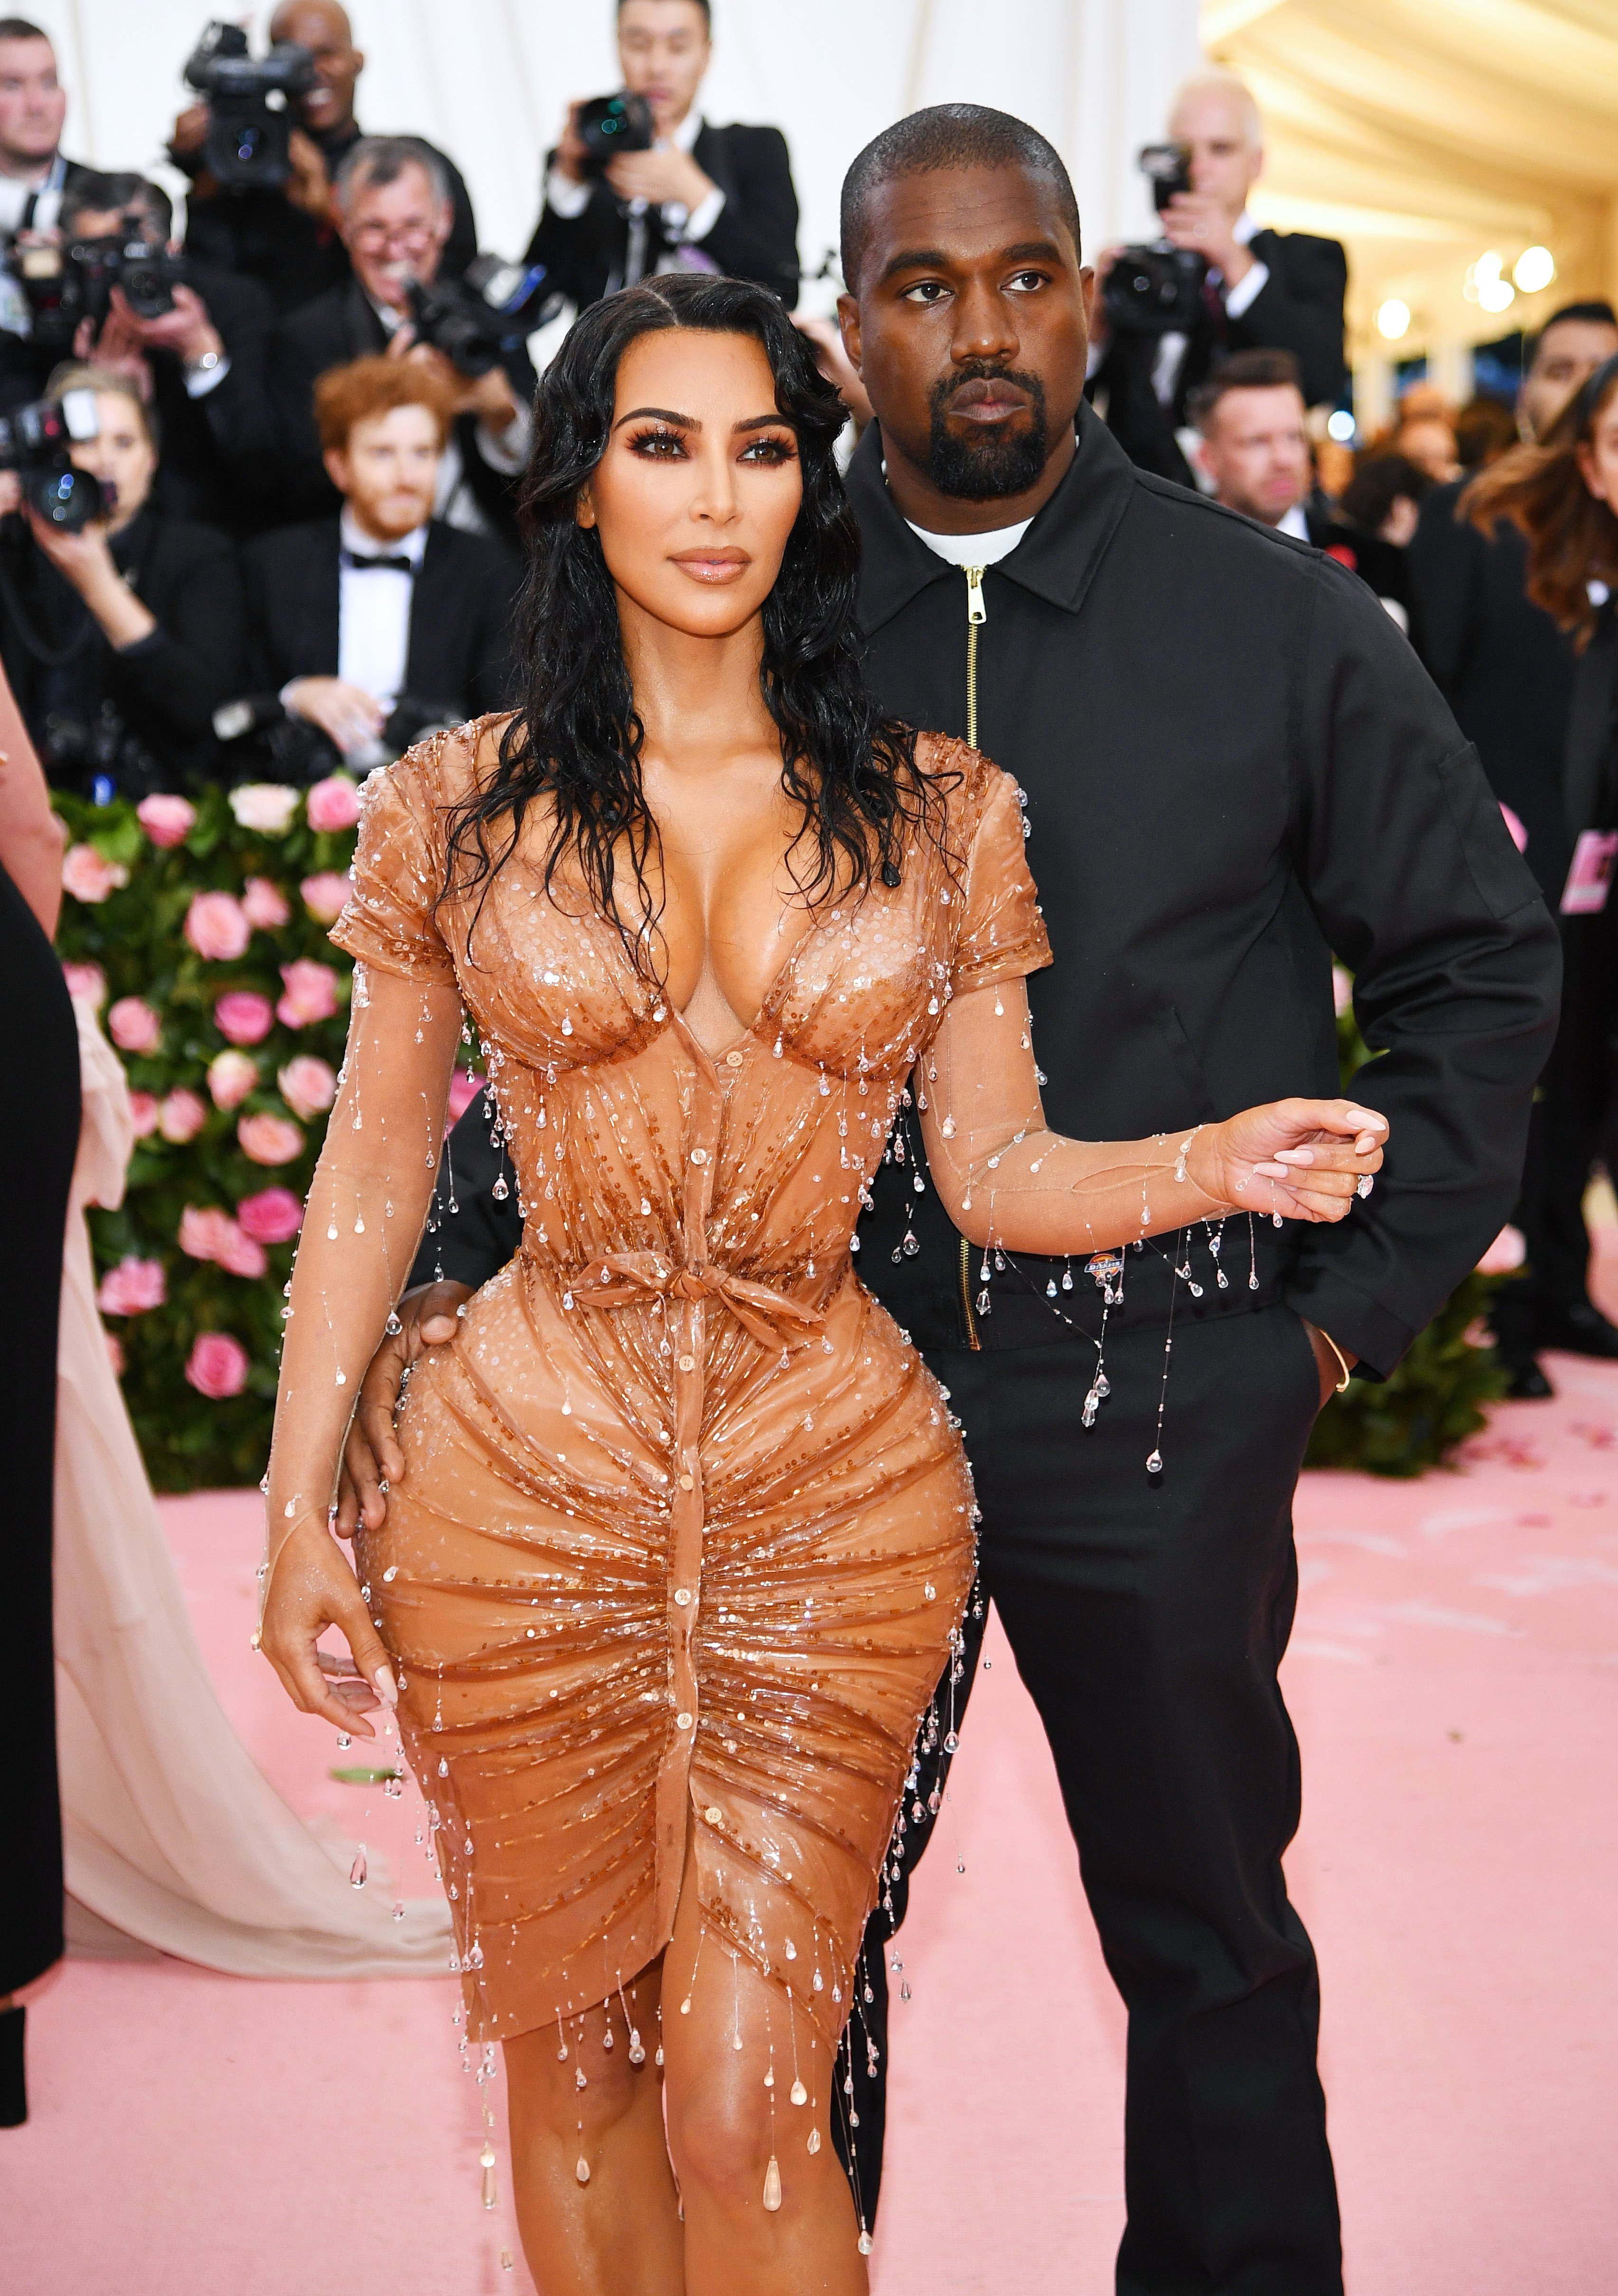 Kim Kardashian West & Kanye West at The 2019 Met Gala on May 06, 2019 in New York City | Photo: Getty Images